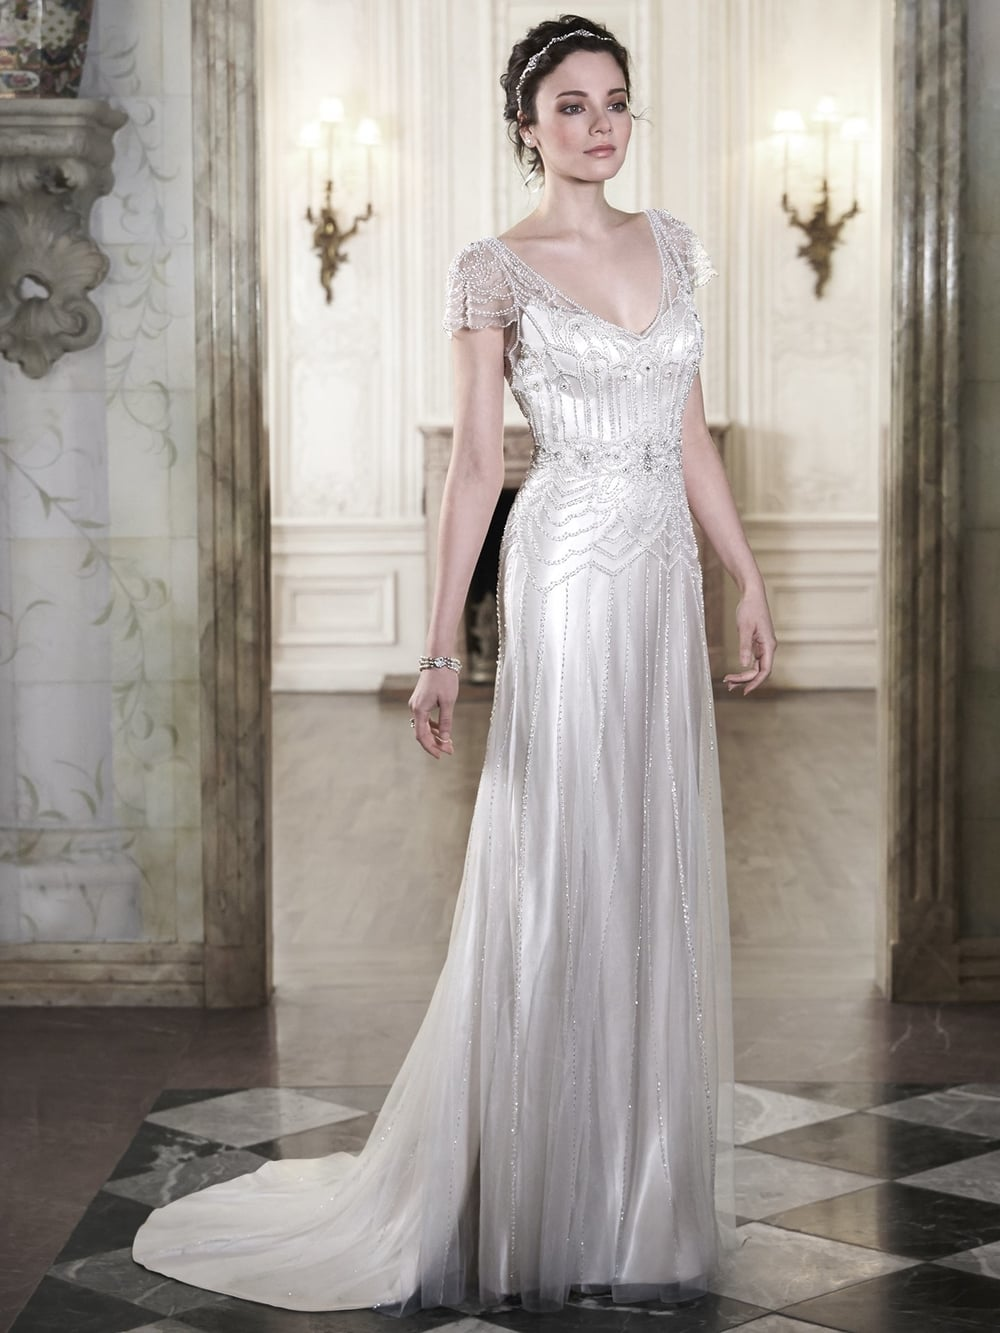 Dresses such as Maggie Sottero's 'Ettia' seem heavily influenced by the 'Downton' look.